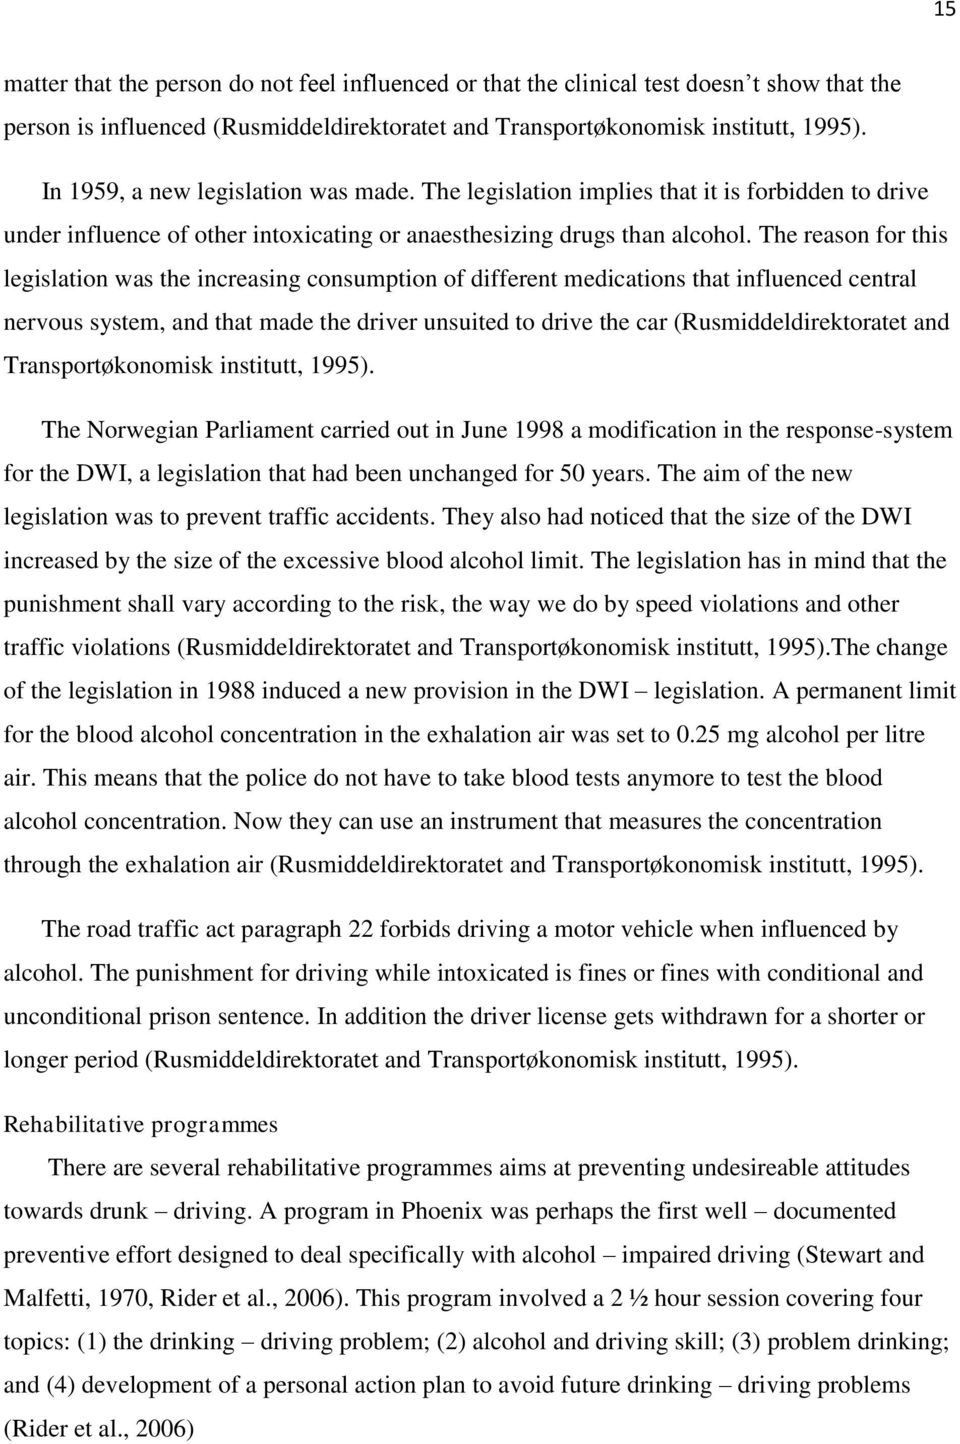 The reason for this legislation was the increasing consumption of different medications that influenced central nervous system, and that made the driver unsuited to drive the car